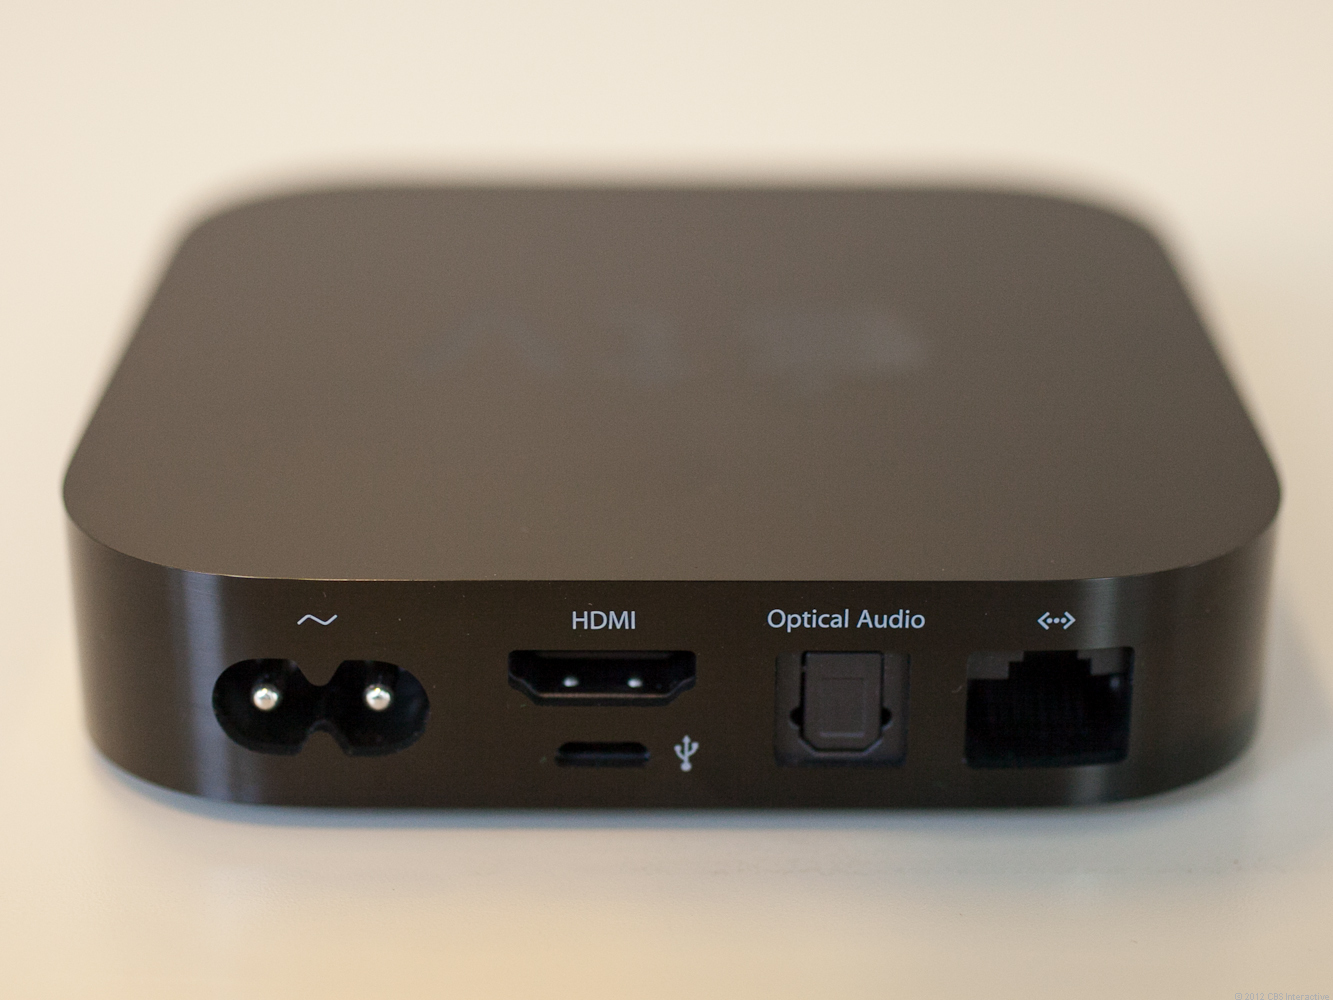 Apple's third-generation Apple TV set top box arrived in early March, bringing 1080p with it.